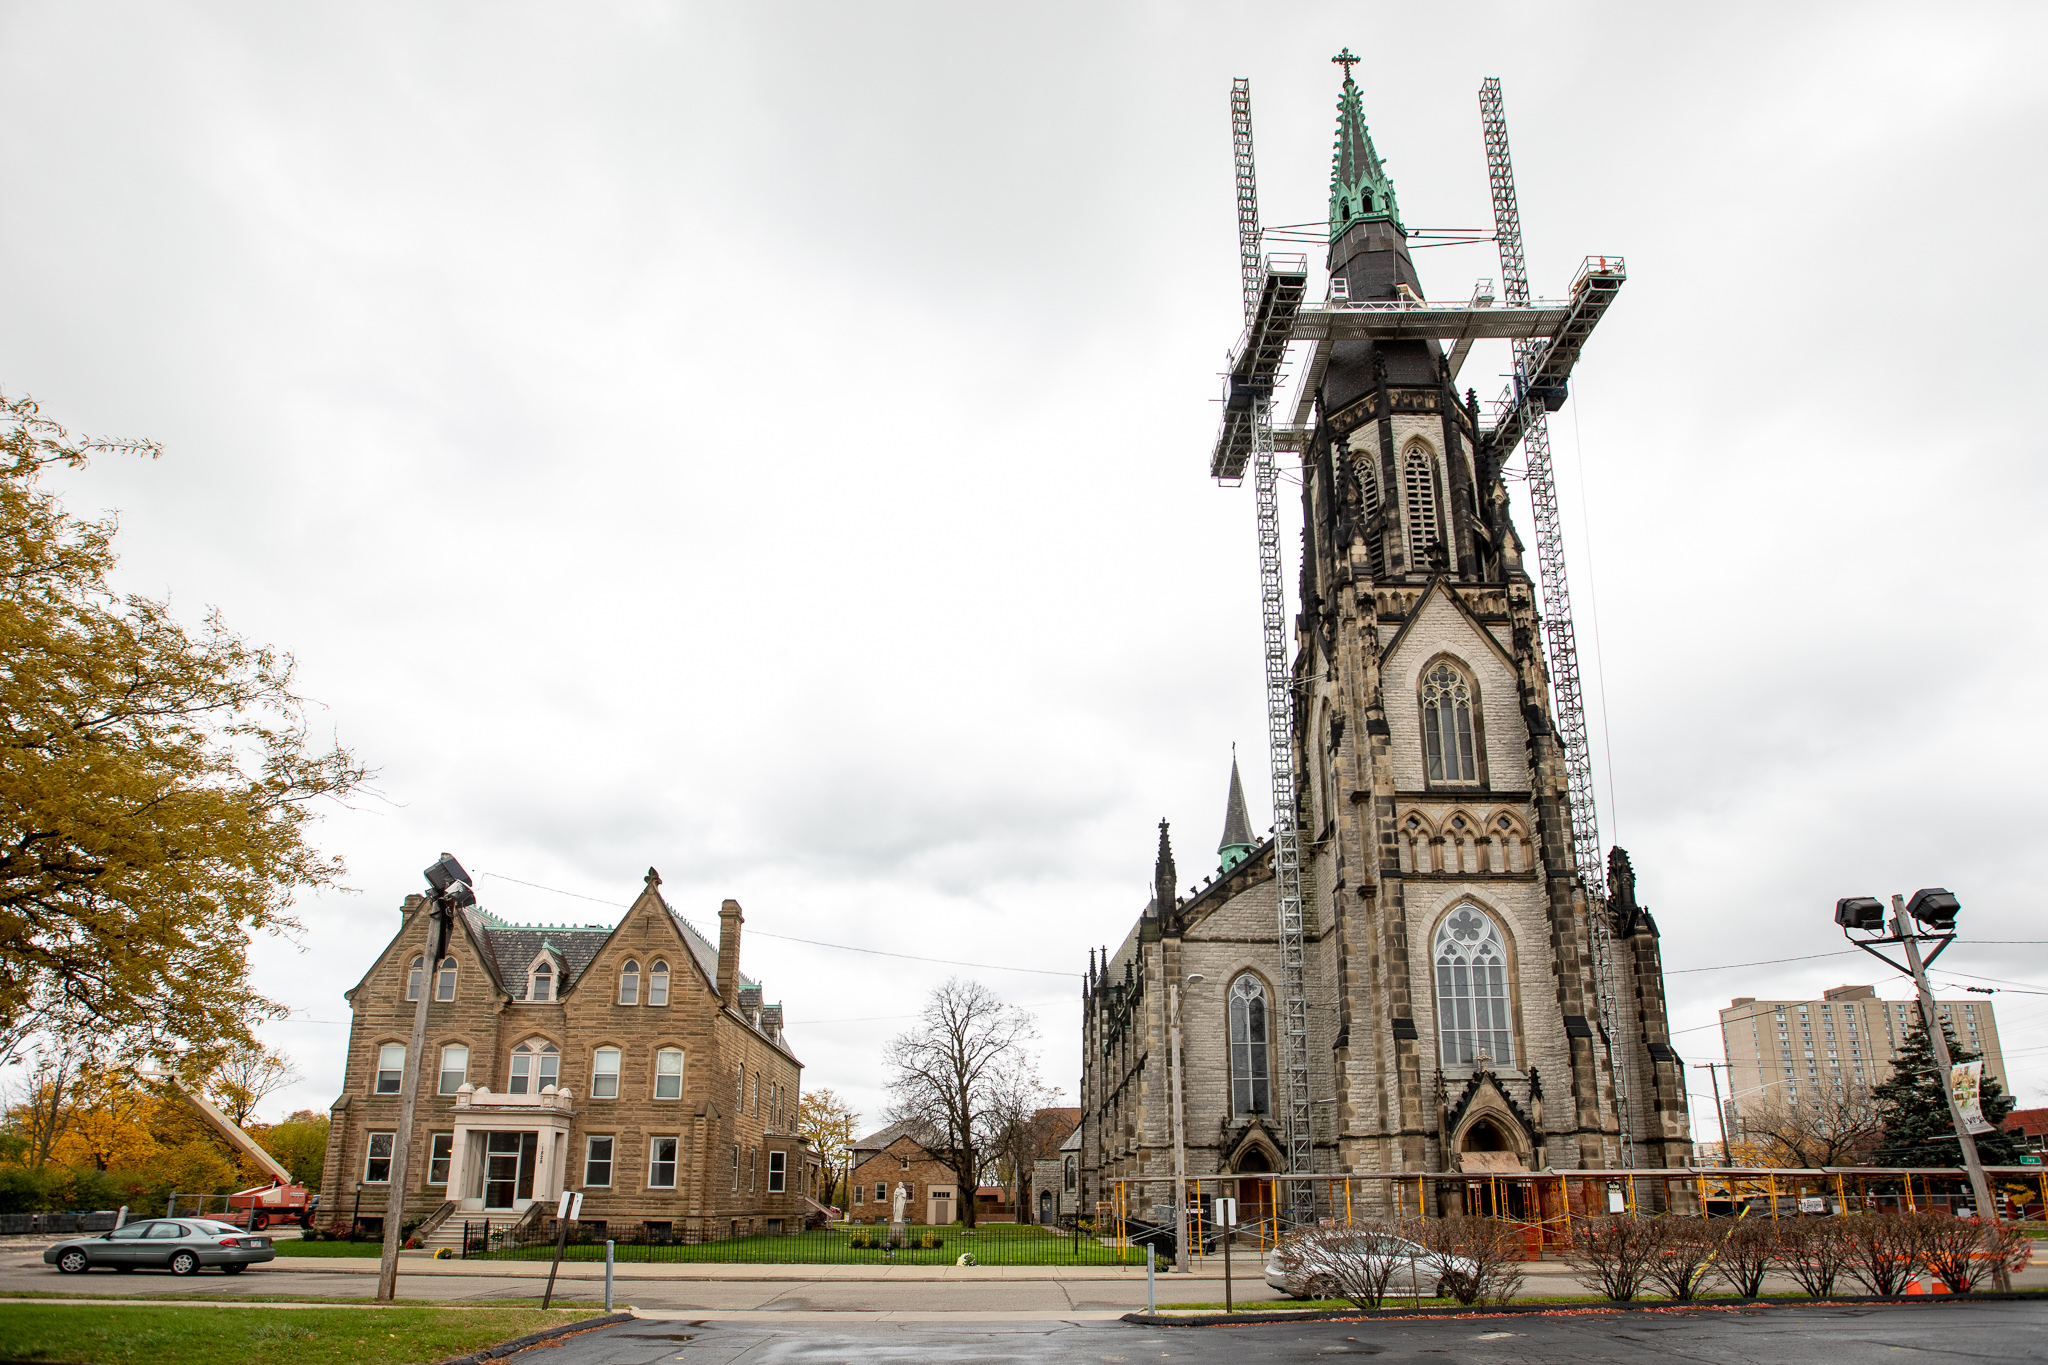 View from across the street of a three-story duplex and tall Gothic church. The church has a green copper steeple with scaffolding around it.